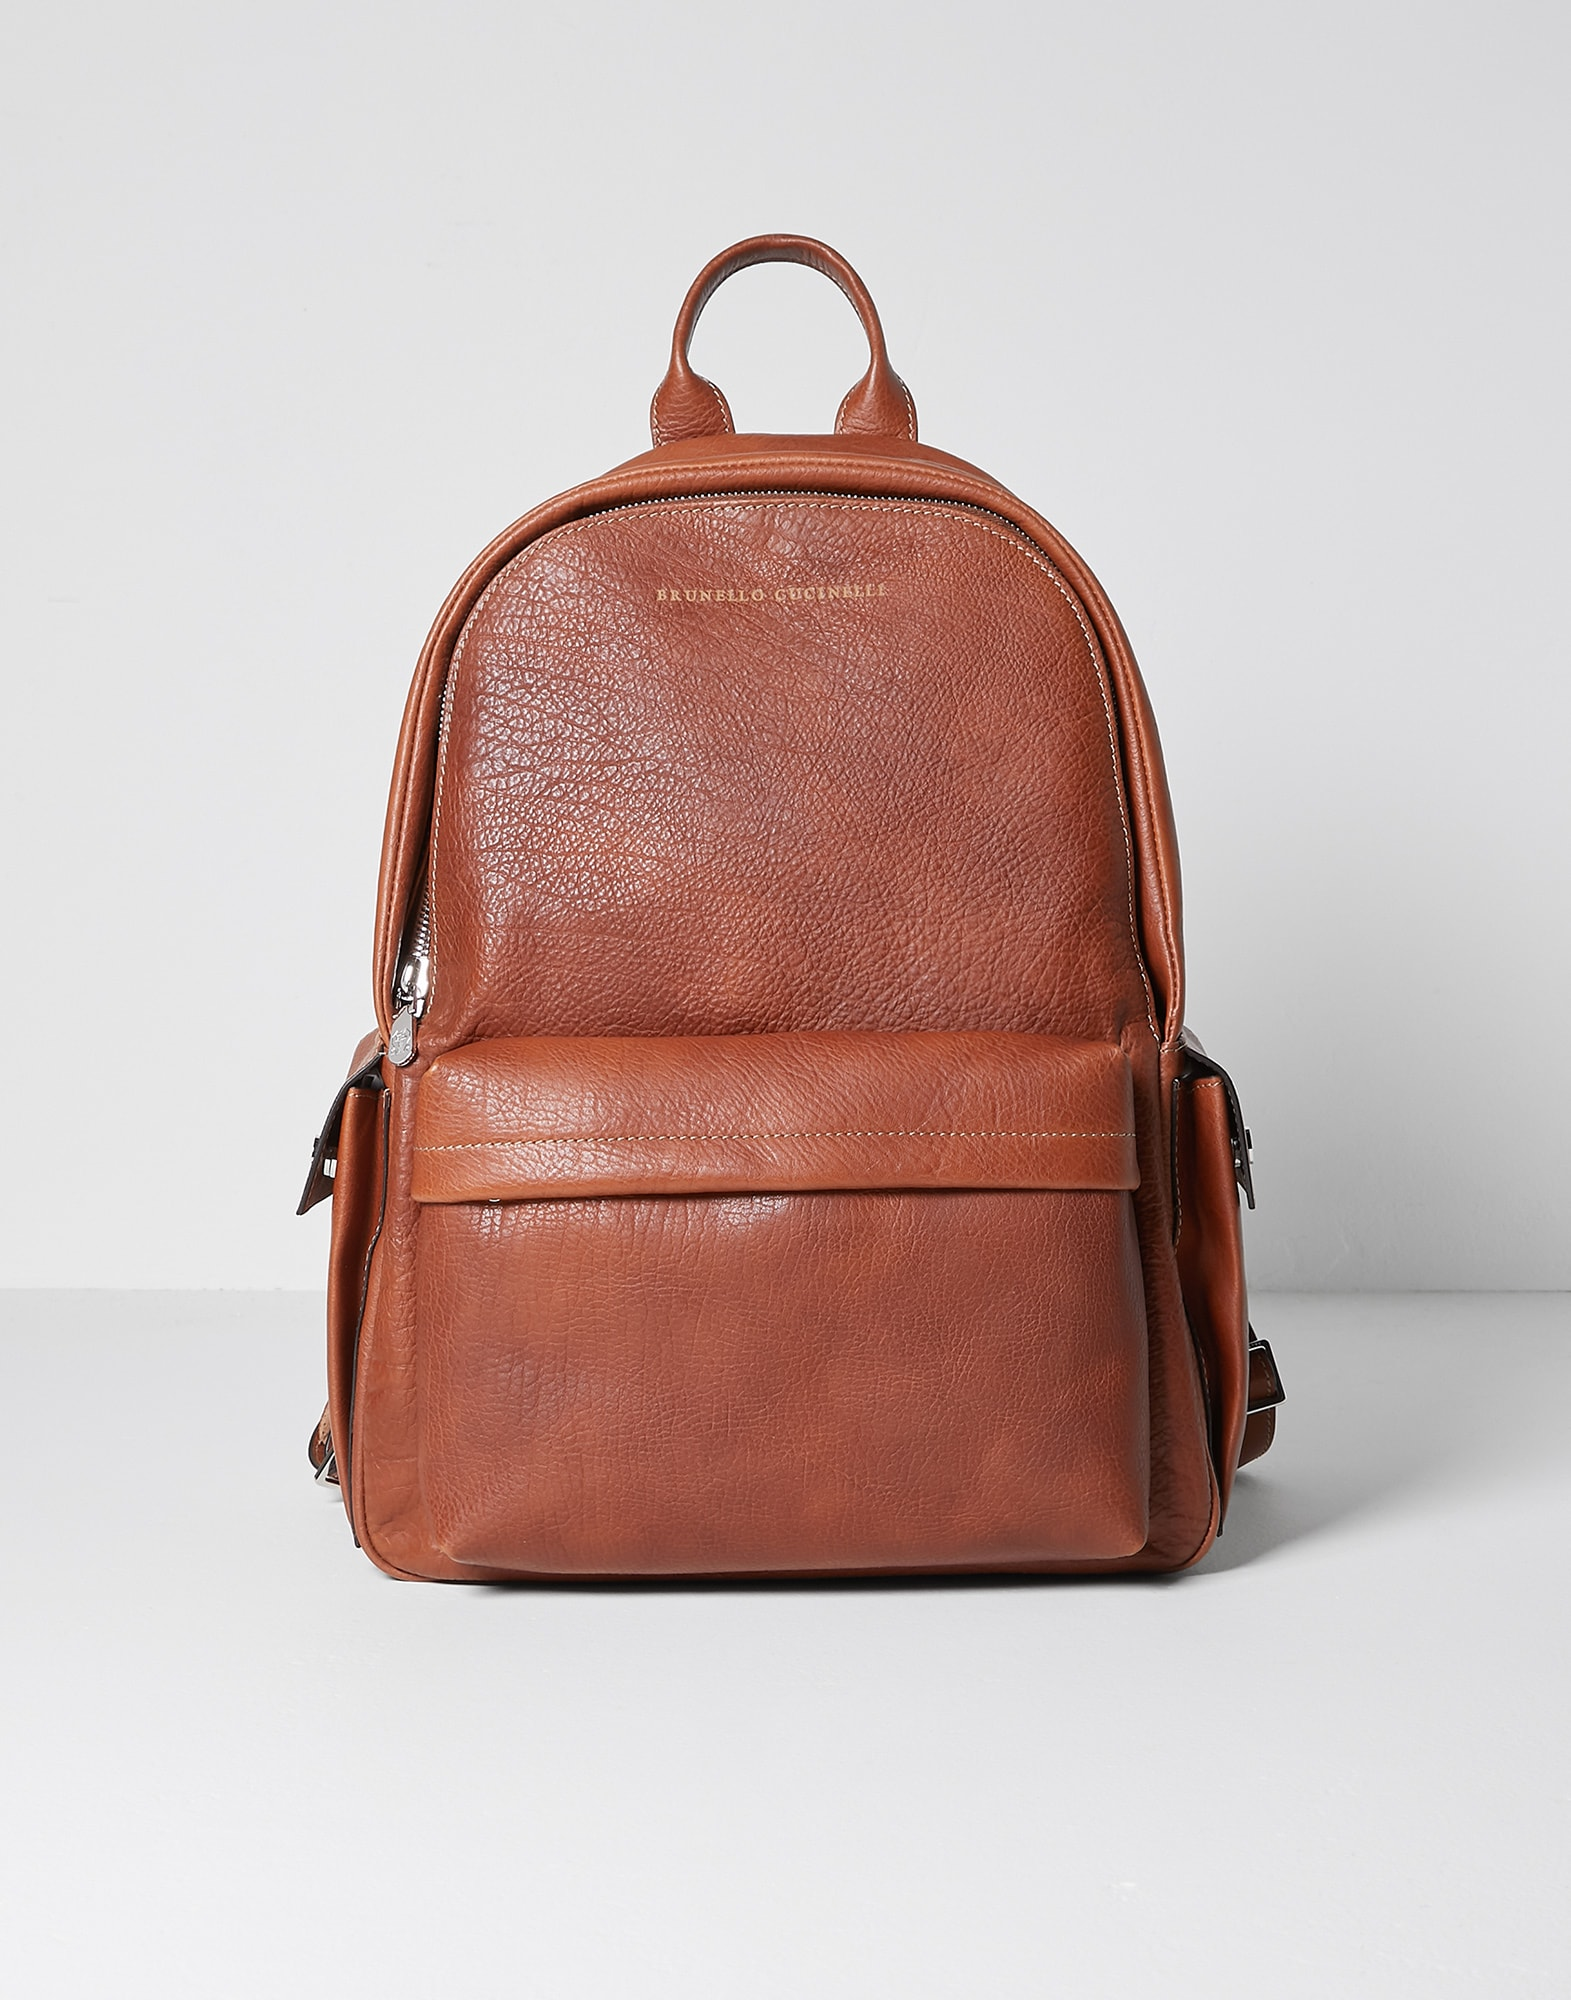 Backpack Rum Man 1 - Brunello Cucinelli